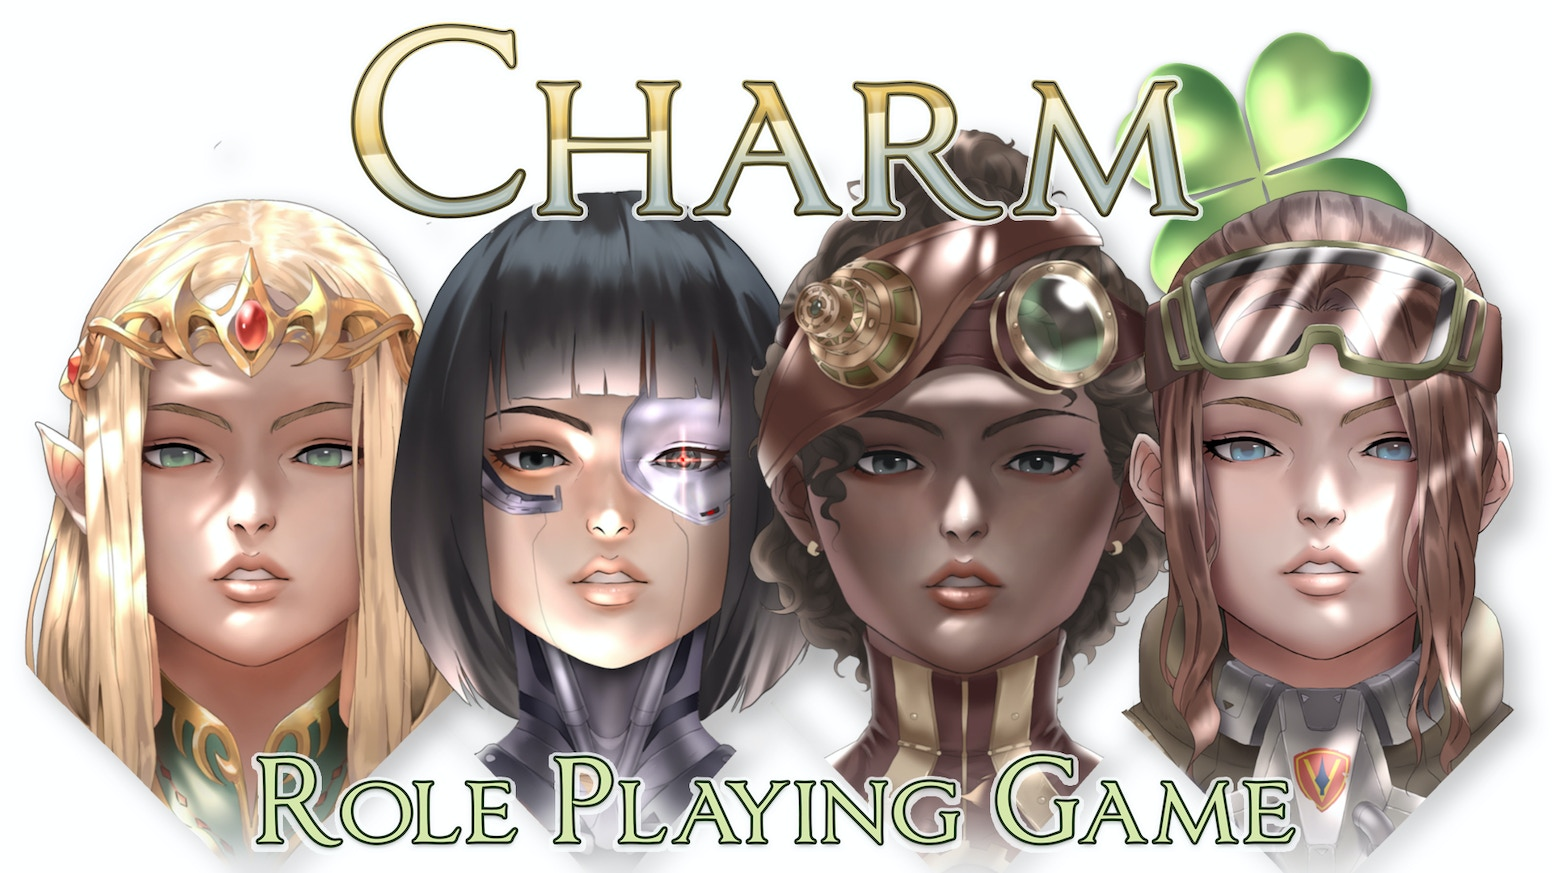 Charm - Universal Roleplaying System: Play any character, from any genre. Be anyone. Learn to play in minutes.